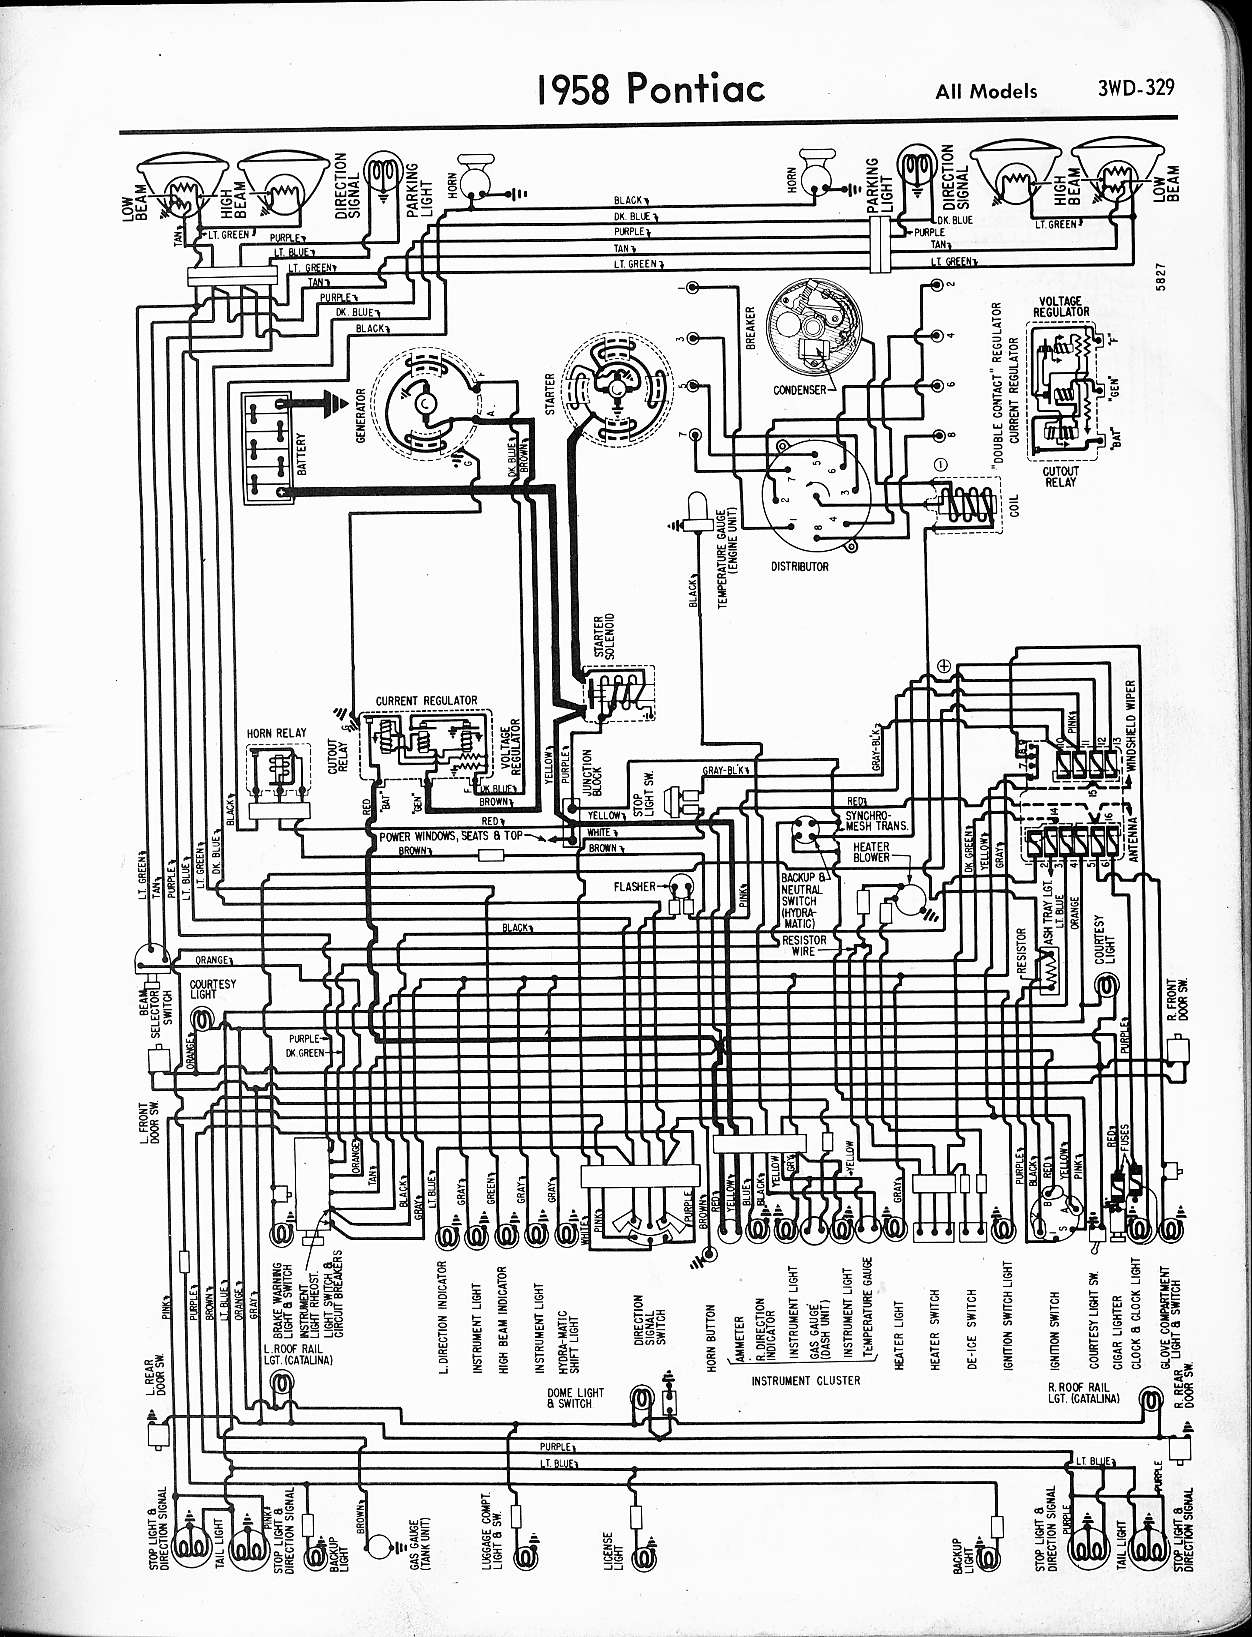 wallace racing wiring diagrams rh wallaceracing com 2008 pontiac grand prix wiring schematic 2005 pontiac grand prix wiring schematic